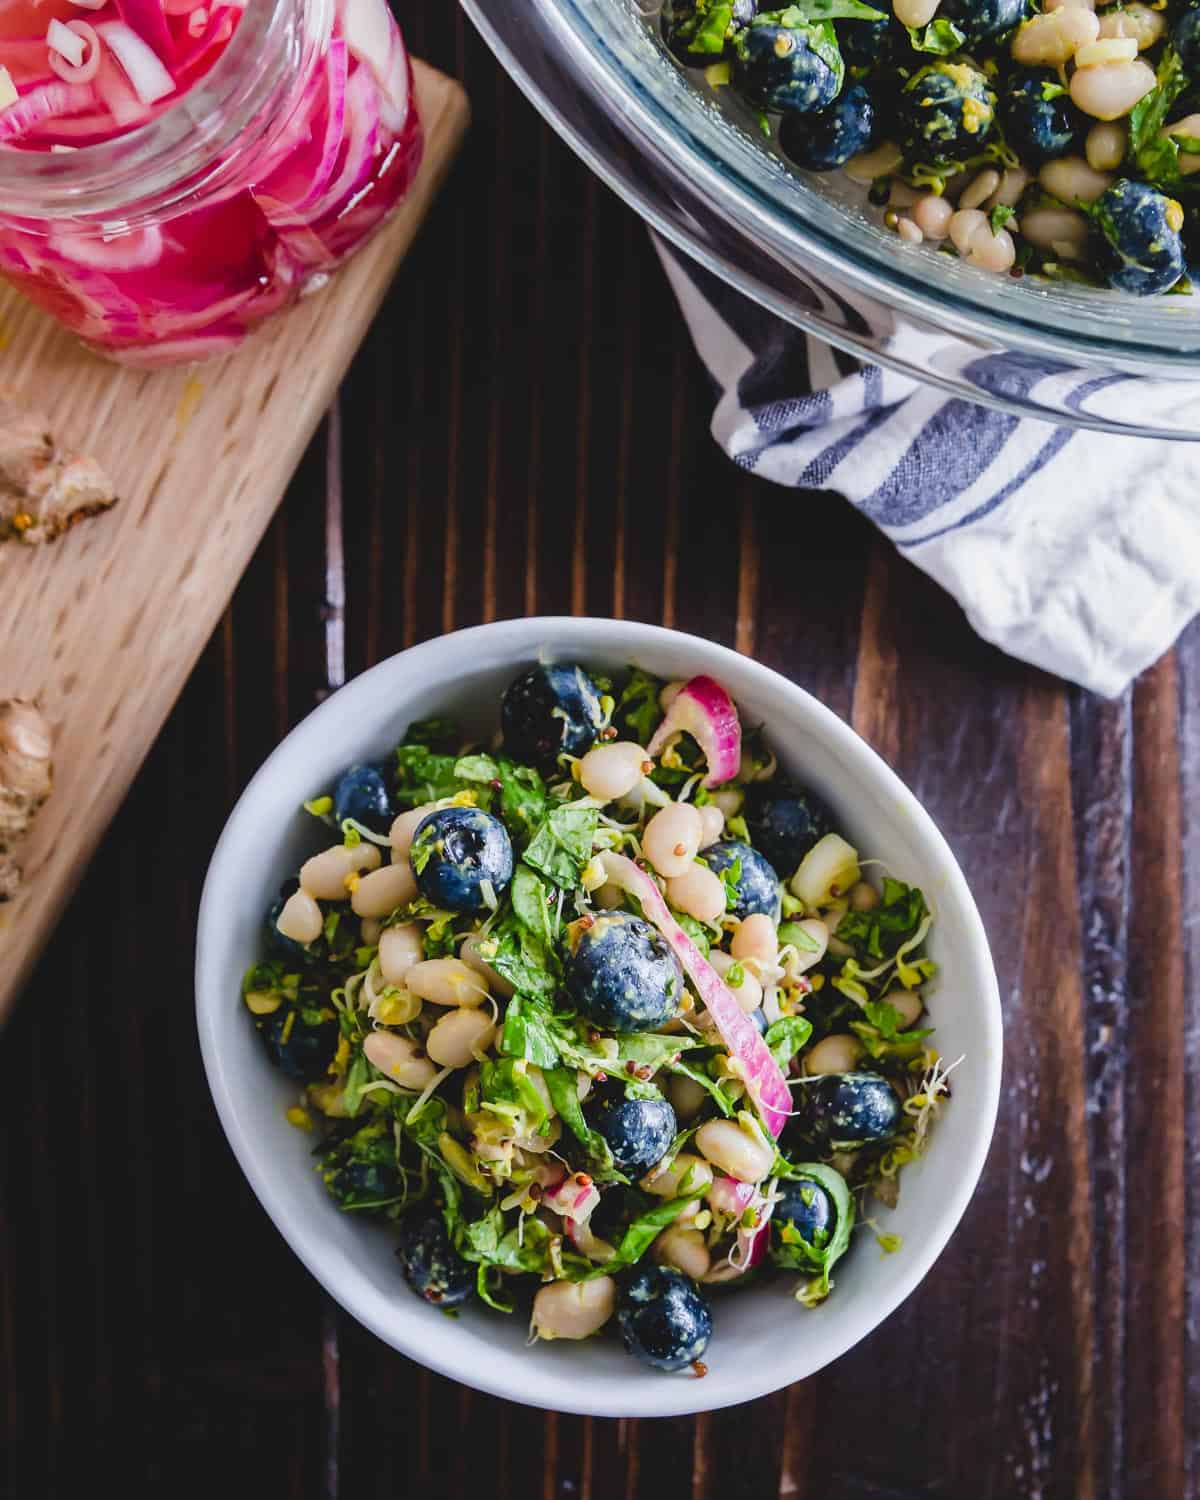 Packed with nutritious and anti-inflammatory foods, this blueberry white bean salad doesn't skimp on flavor.